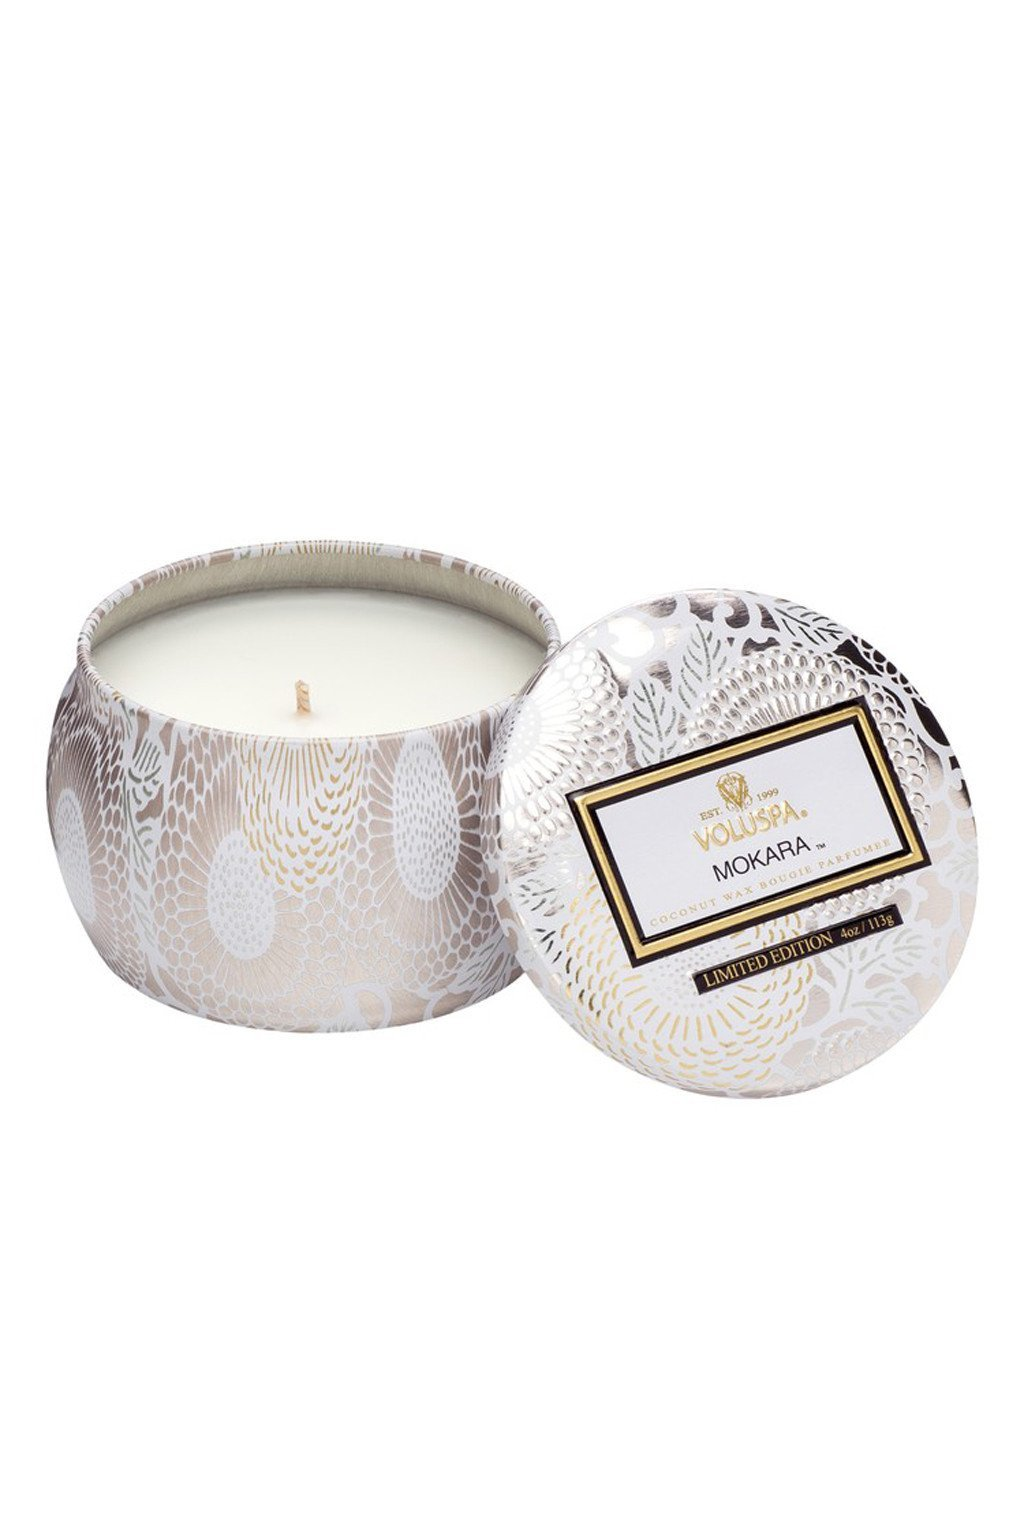 Mokara Petite Decorative Candle - Two Penny Blue